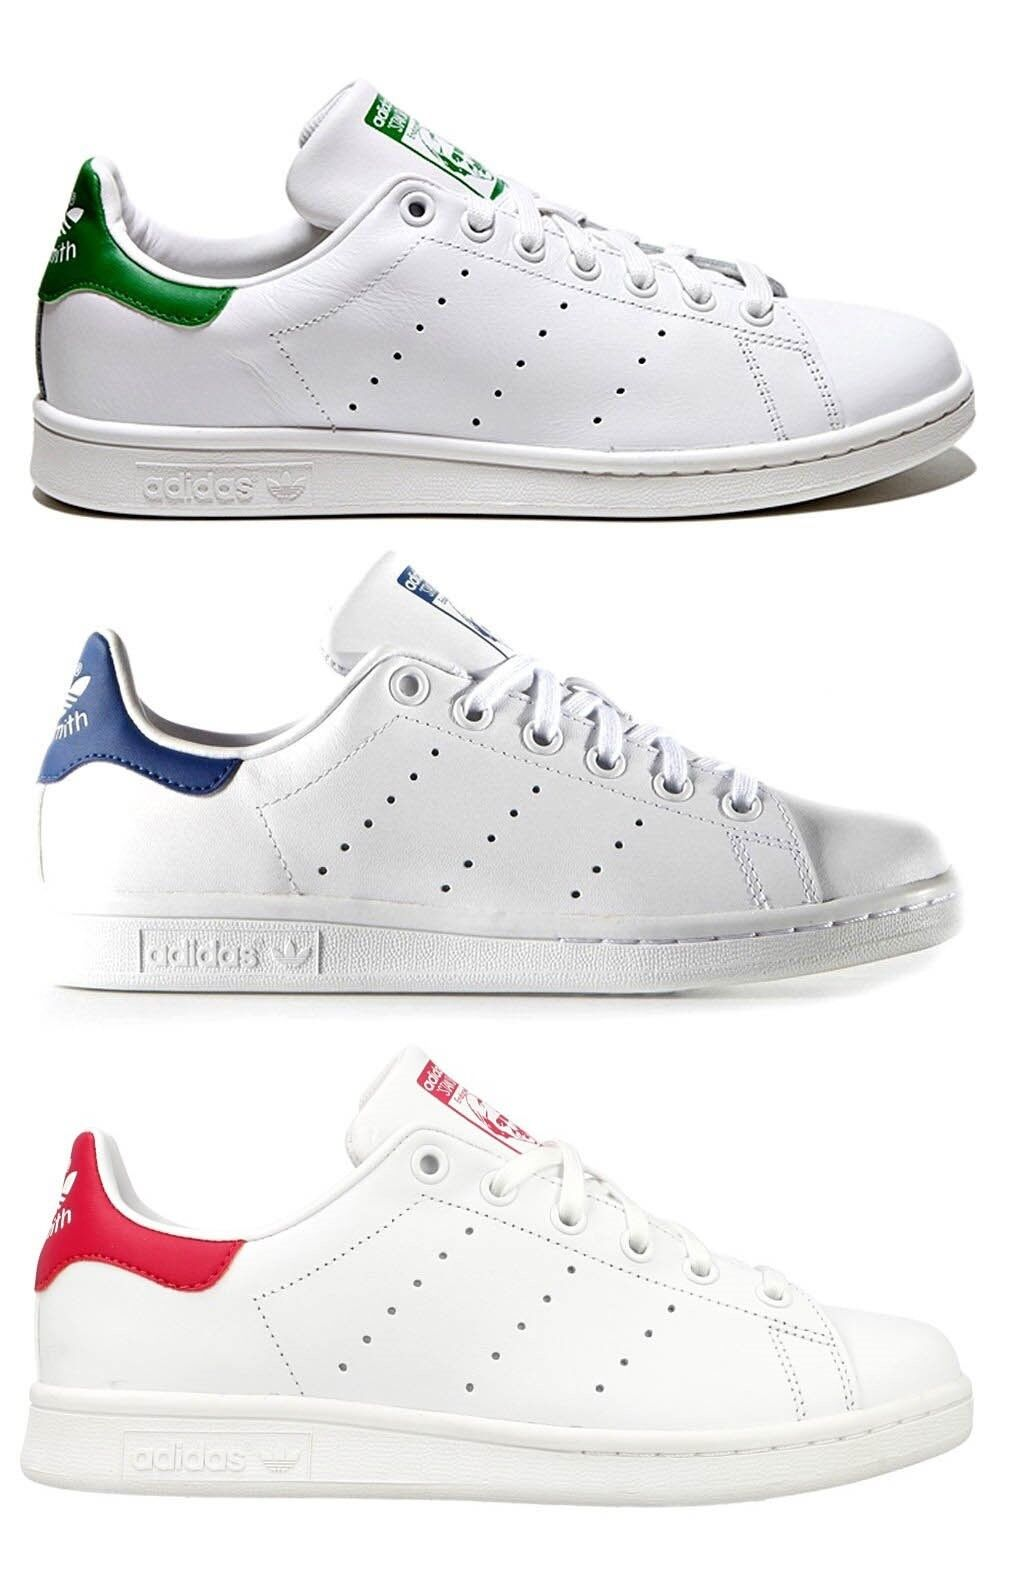 ADIDAS STAN SMITH sportif J femmes chaussures pour sportif SMITH baskets cuir blanc casual Hommes,Femmes chaussures Baskets fe3dbc